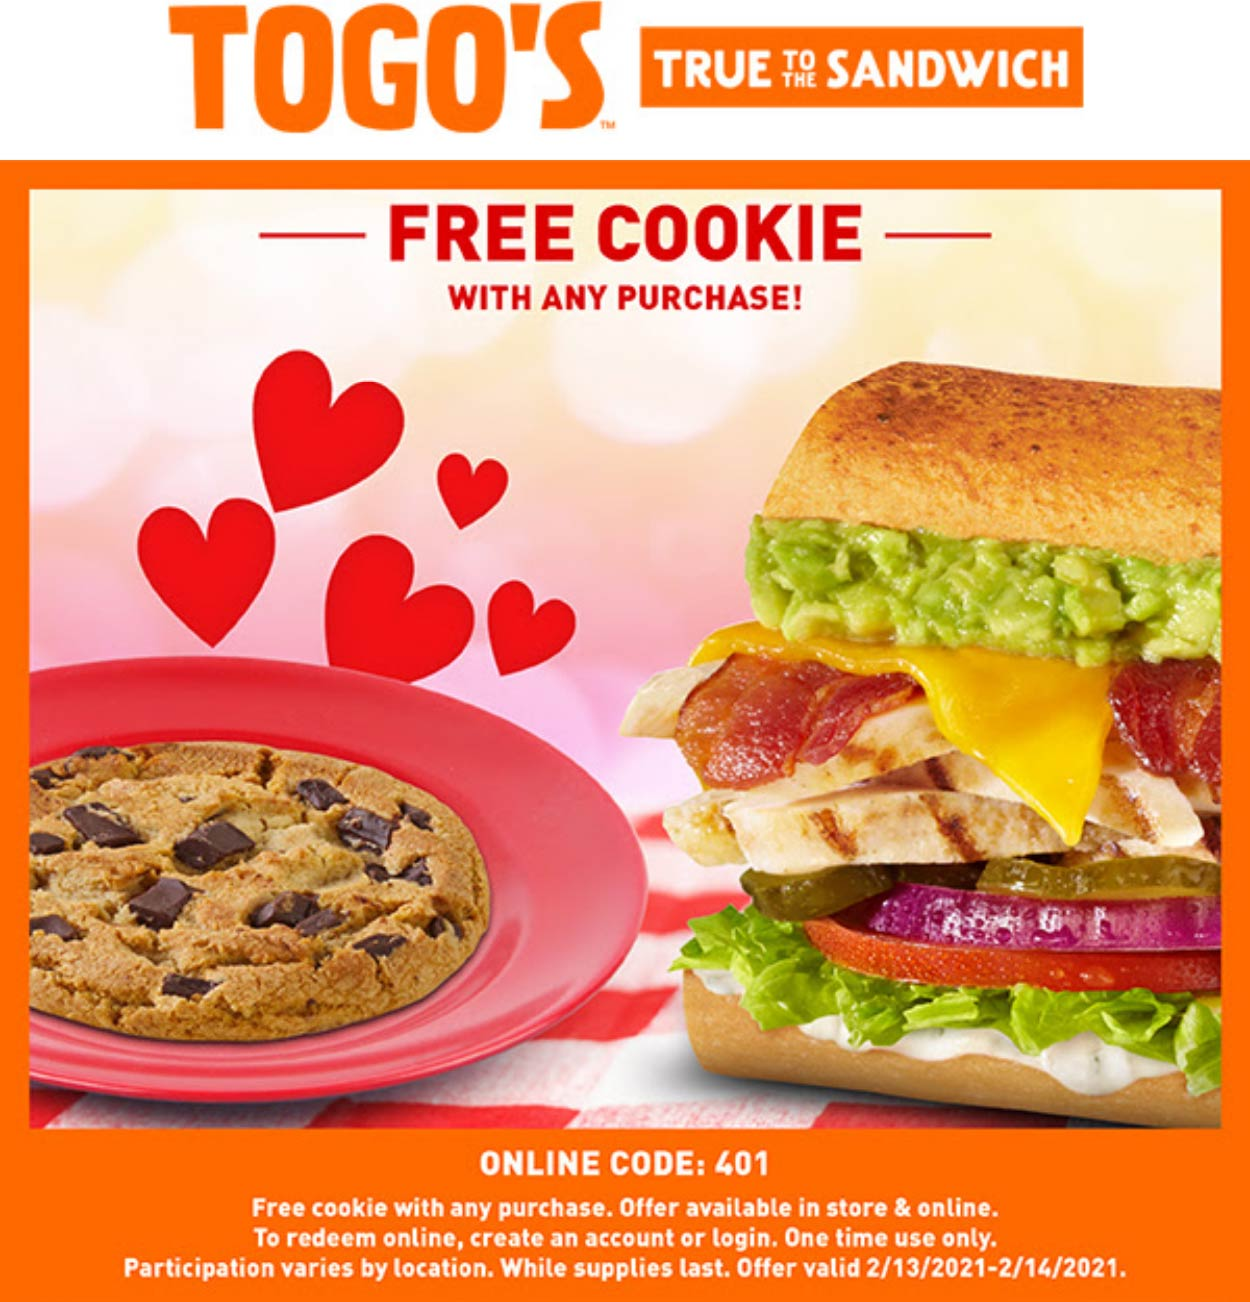 Togos restaurants Coupon  Free cookie with any order at Togos sandwich shops #togos